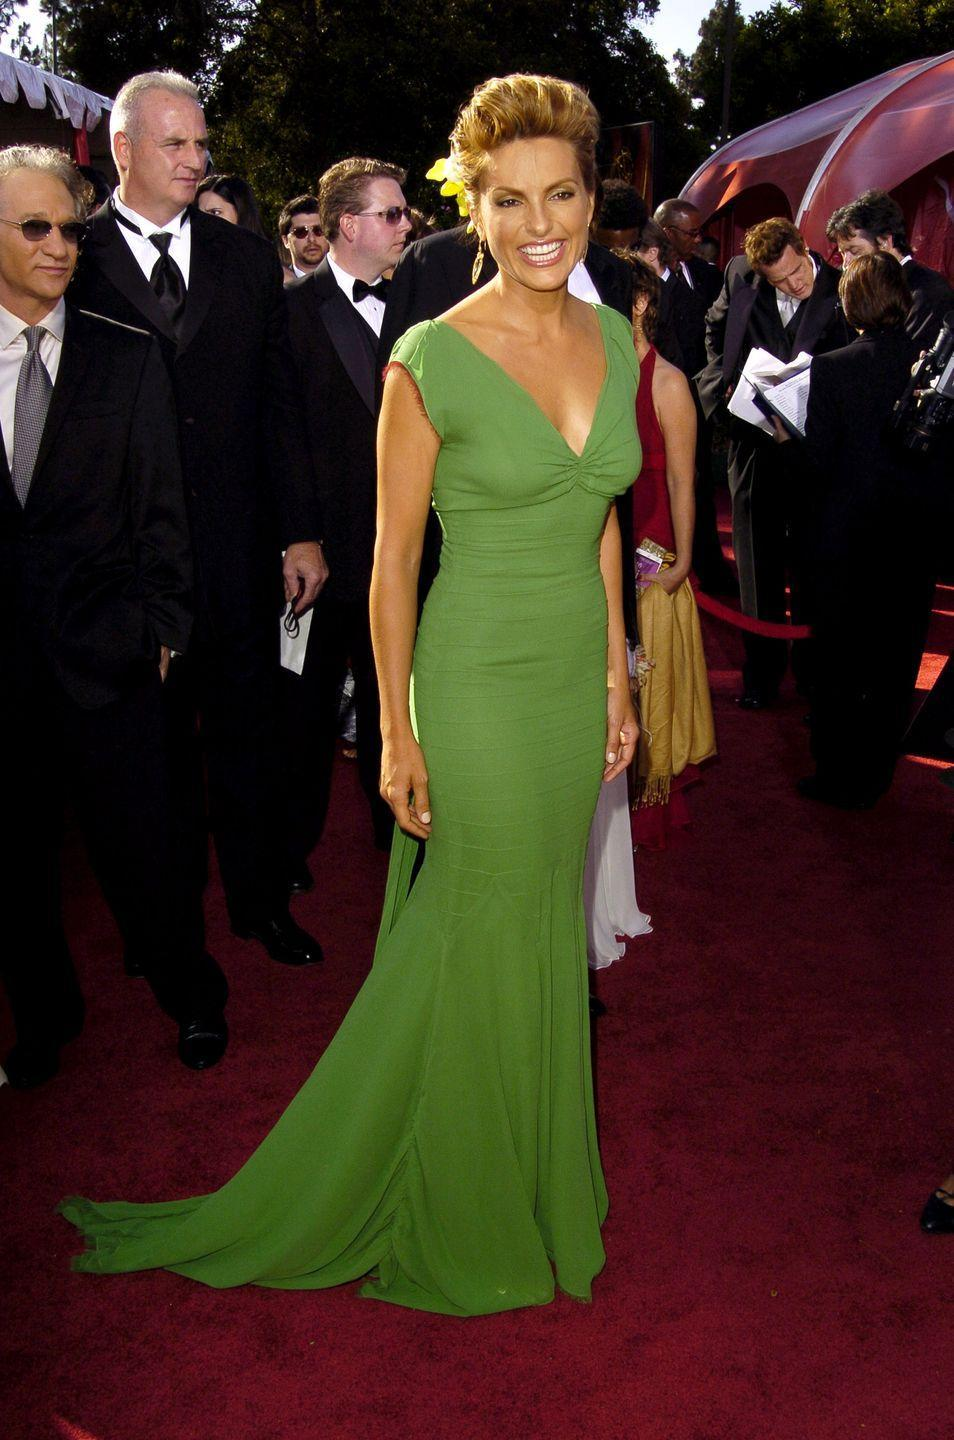 <p>Hargitay looked elegantly tropical in her bright green dress, which she accessorized with a yellow flower in her hair, at the 2004 Emmy Awards. </p>